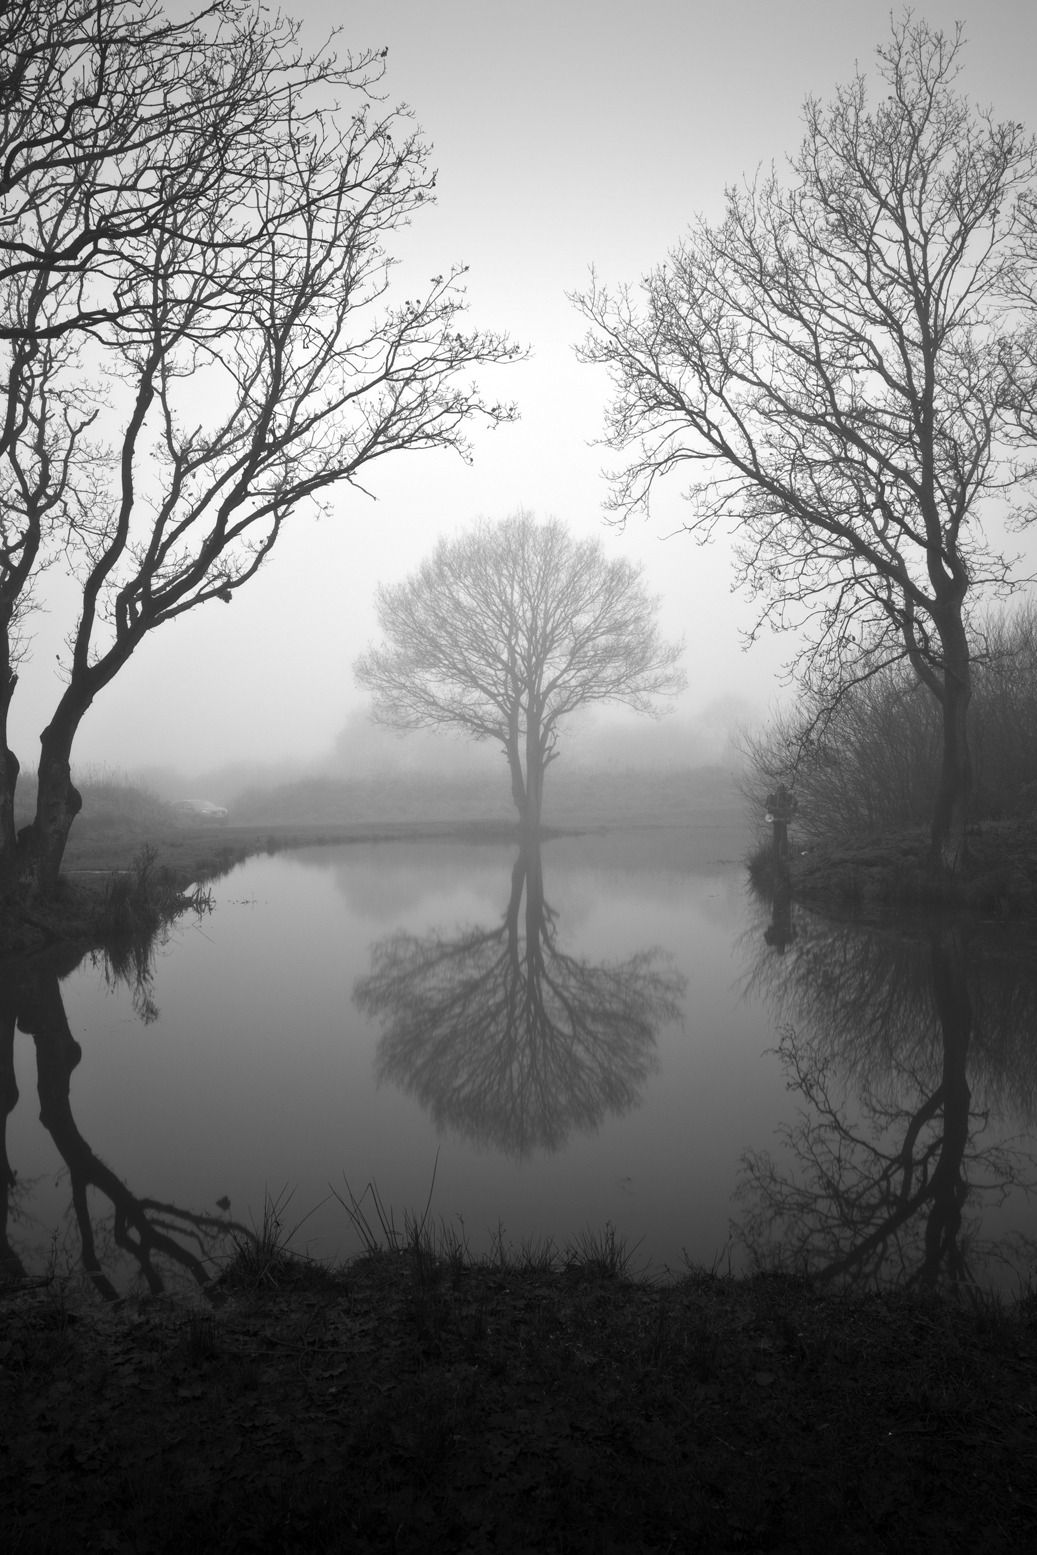 Stephenmcnallyphotography Misty Foggy Cold Morningnatures Breath Slowly Risesreflection Rippleslyme And Wood Countryside Park Nature Mystic Garden Landscape